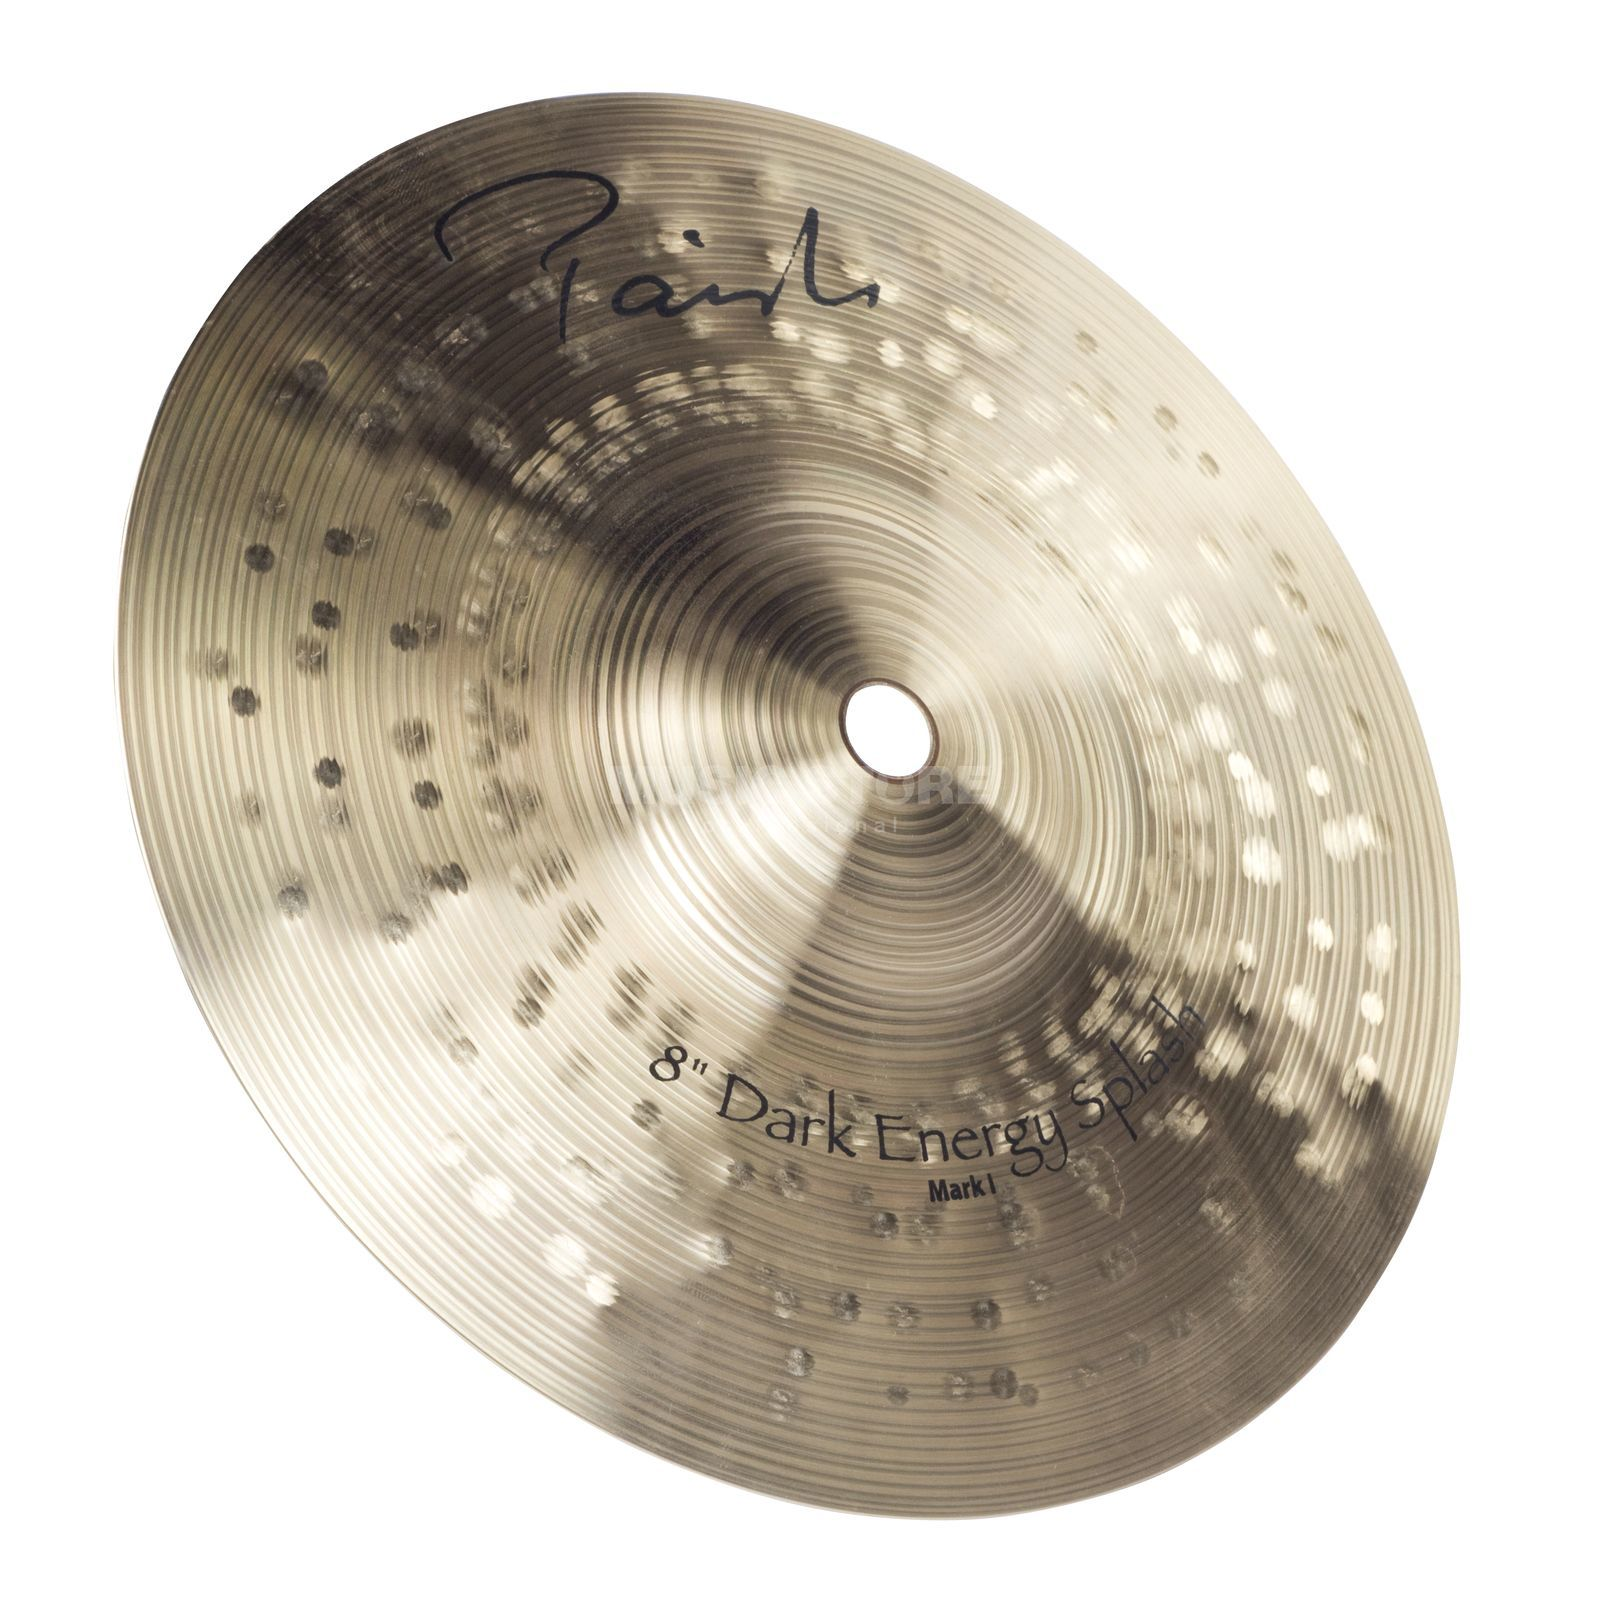 "Paiste Signature Splash 8"", Dark Energy Splash MK1 Produktbild"